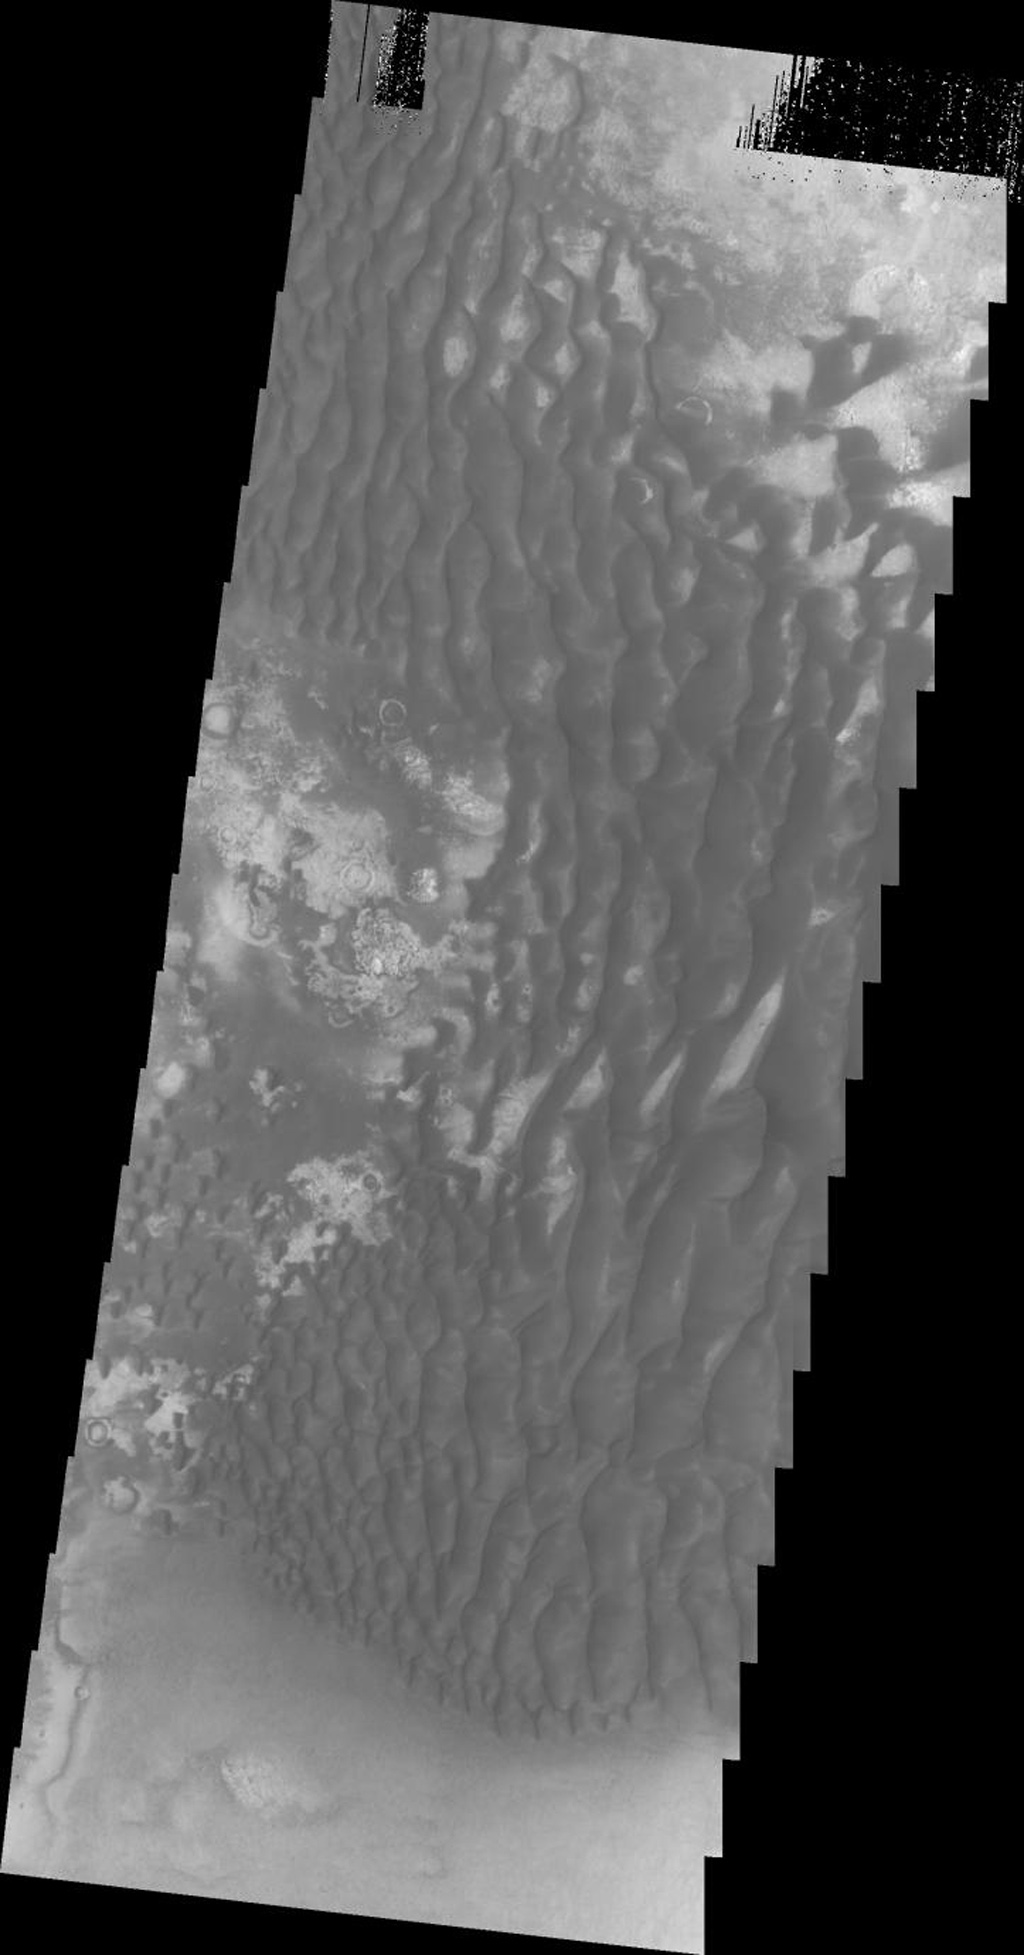 Dark dunes on Mars are seen in this image as seen by NASA's Mars Odyssey spacecraft.